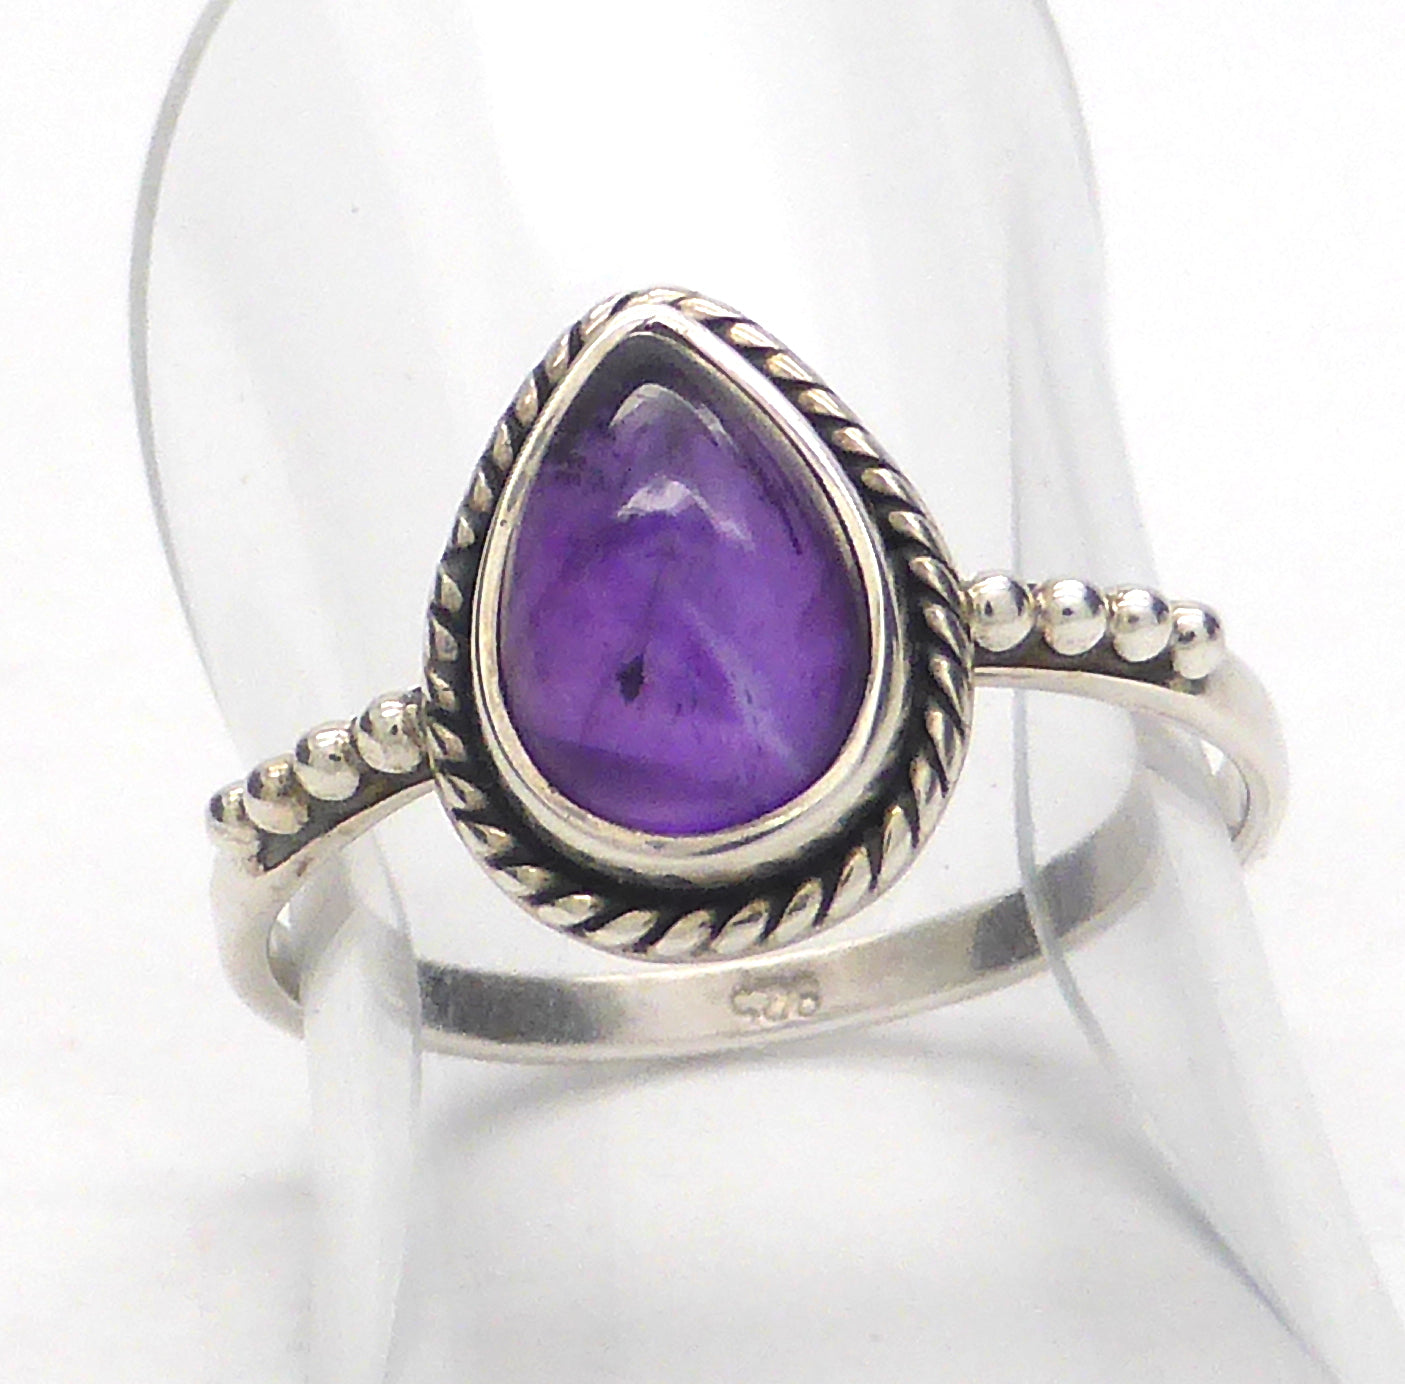 Amethyst Ring | Teardrop Cabochon | 925 Sterling Silver | Silver Rope & Ball detail | US Size 5, 7  | Crystal Heart Melbourne Australia since 1986